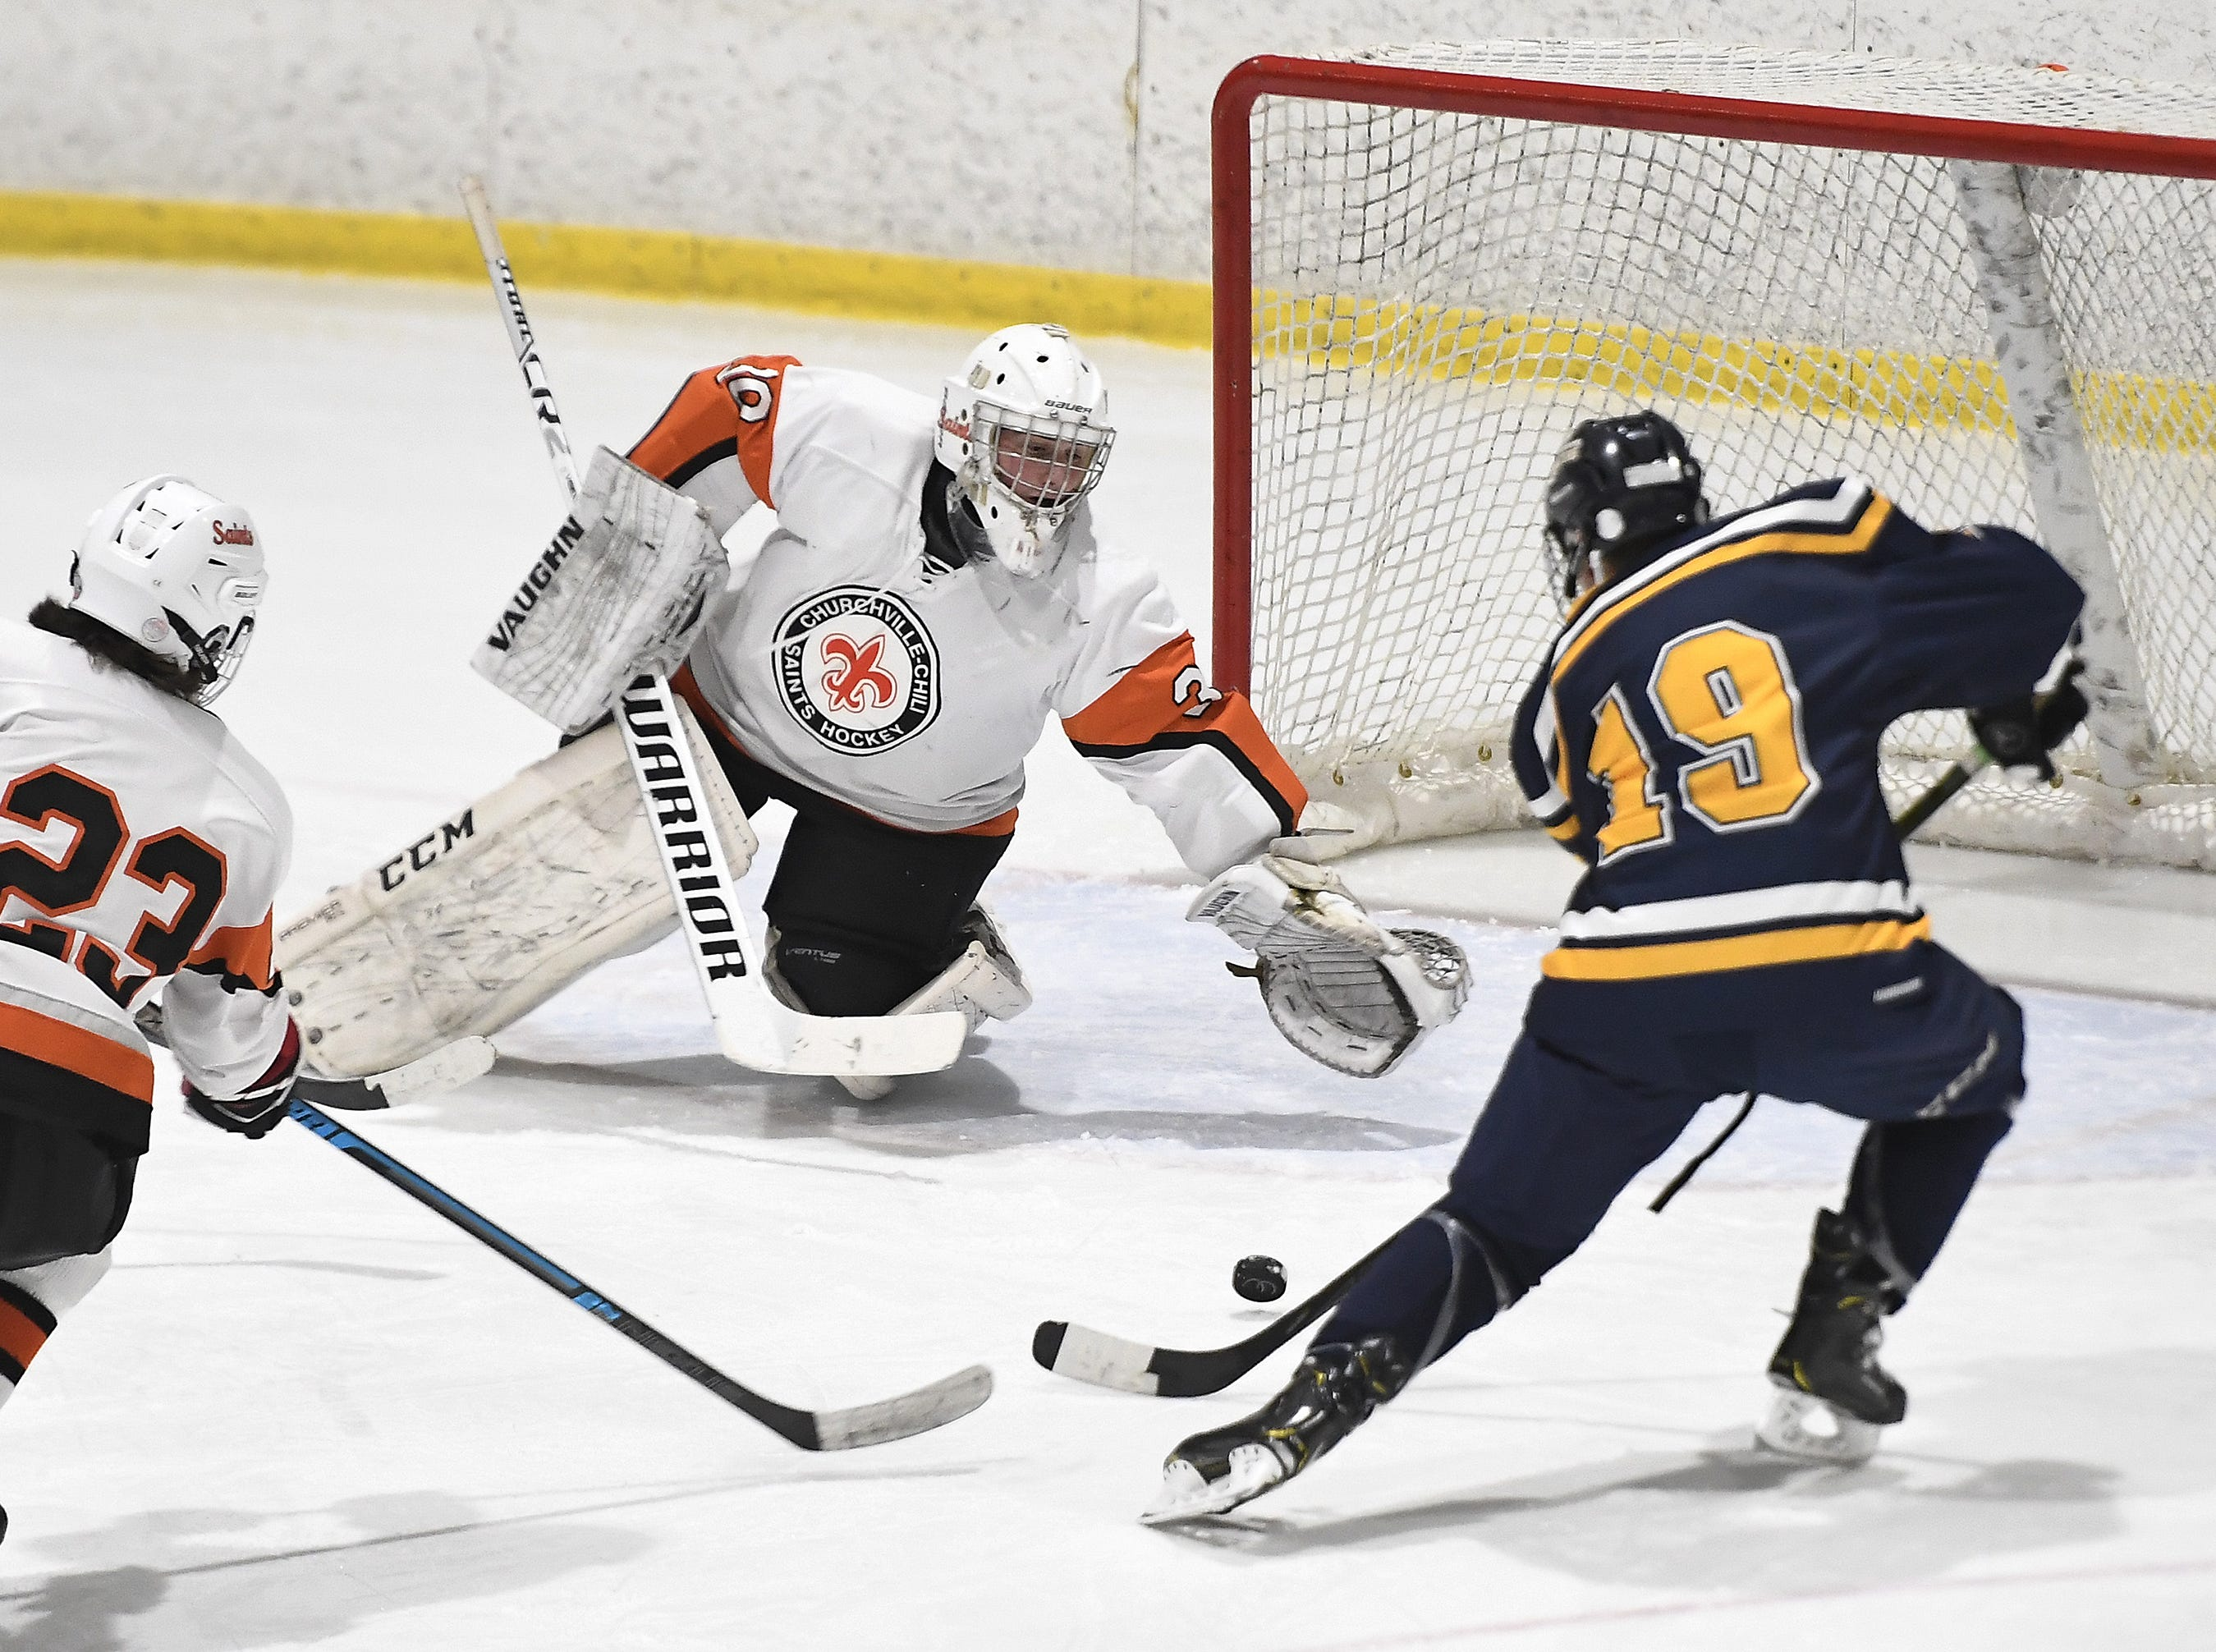 Webster Thomas' Tommy Ammon (19) puts the puck past Churchville-Chili goalie Ethan Breton for the Titans' third goal during a regular season game played at the Scottsville Ice Arena, Tuesday, Jan. 22, 2019. Webster Thomas beat Chuchville-Chili 4-1.